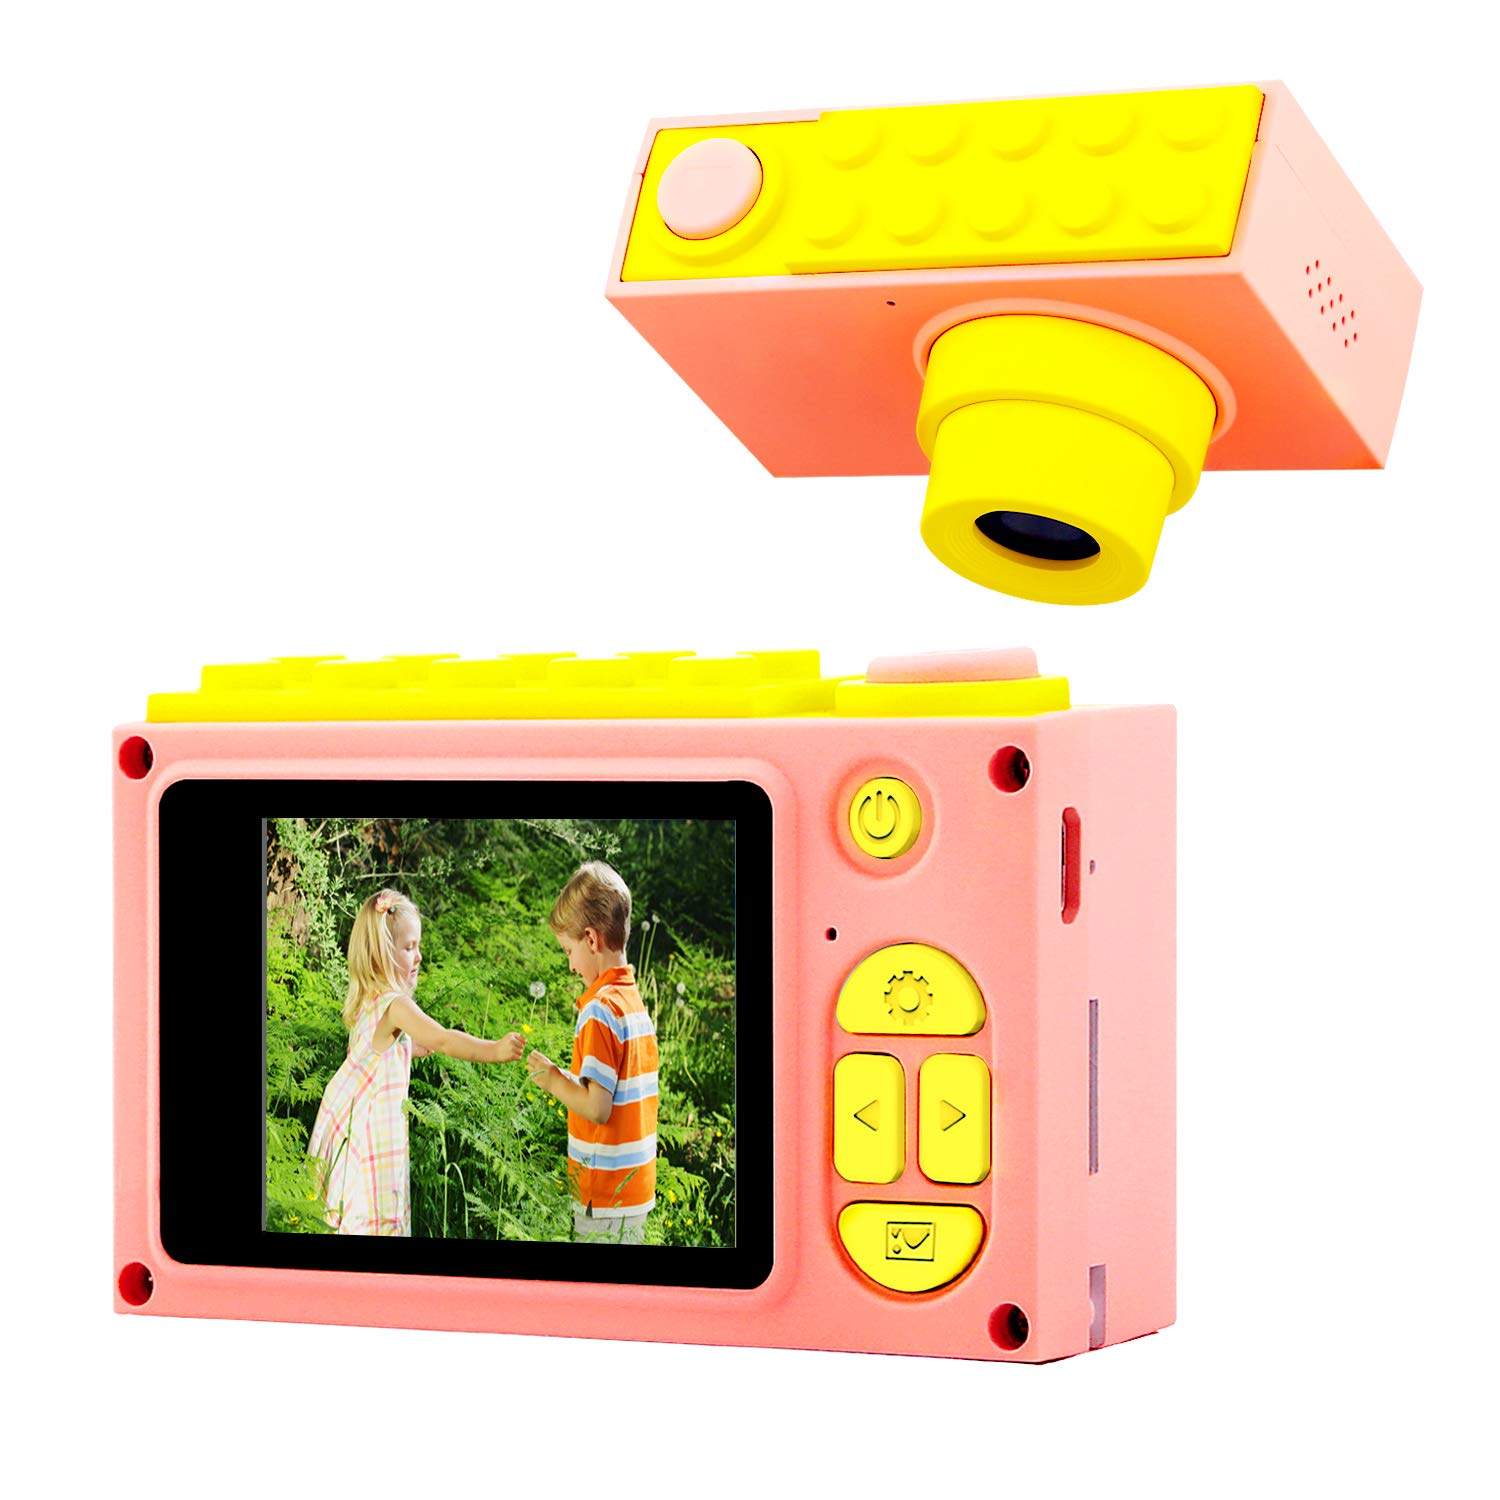 ShinePick Kids Digital Camera Mini 2 Inch Screen Children's Camera 8MP HD Digital Camera with Silicone Soft Cover & 256M Micro SD Card(Pink)